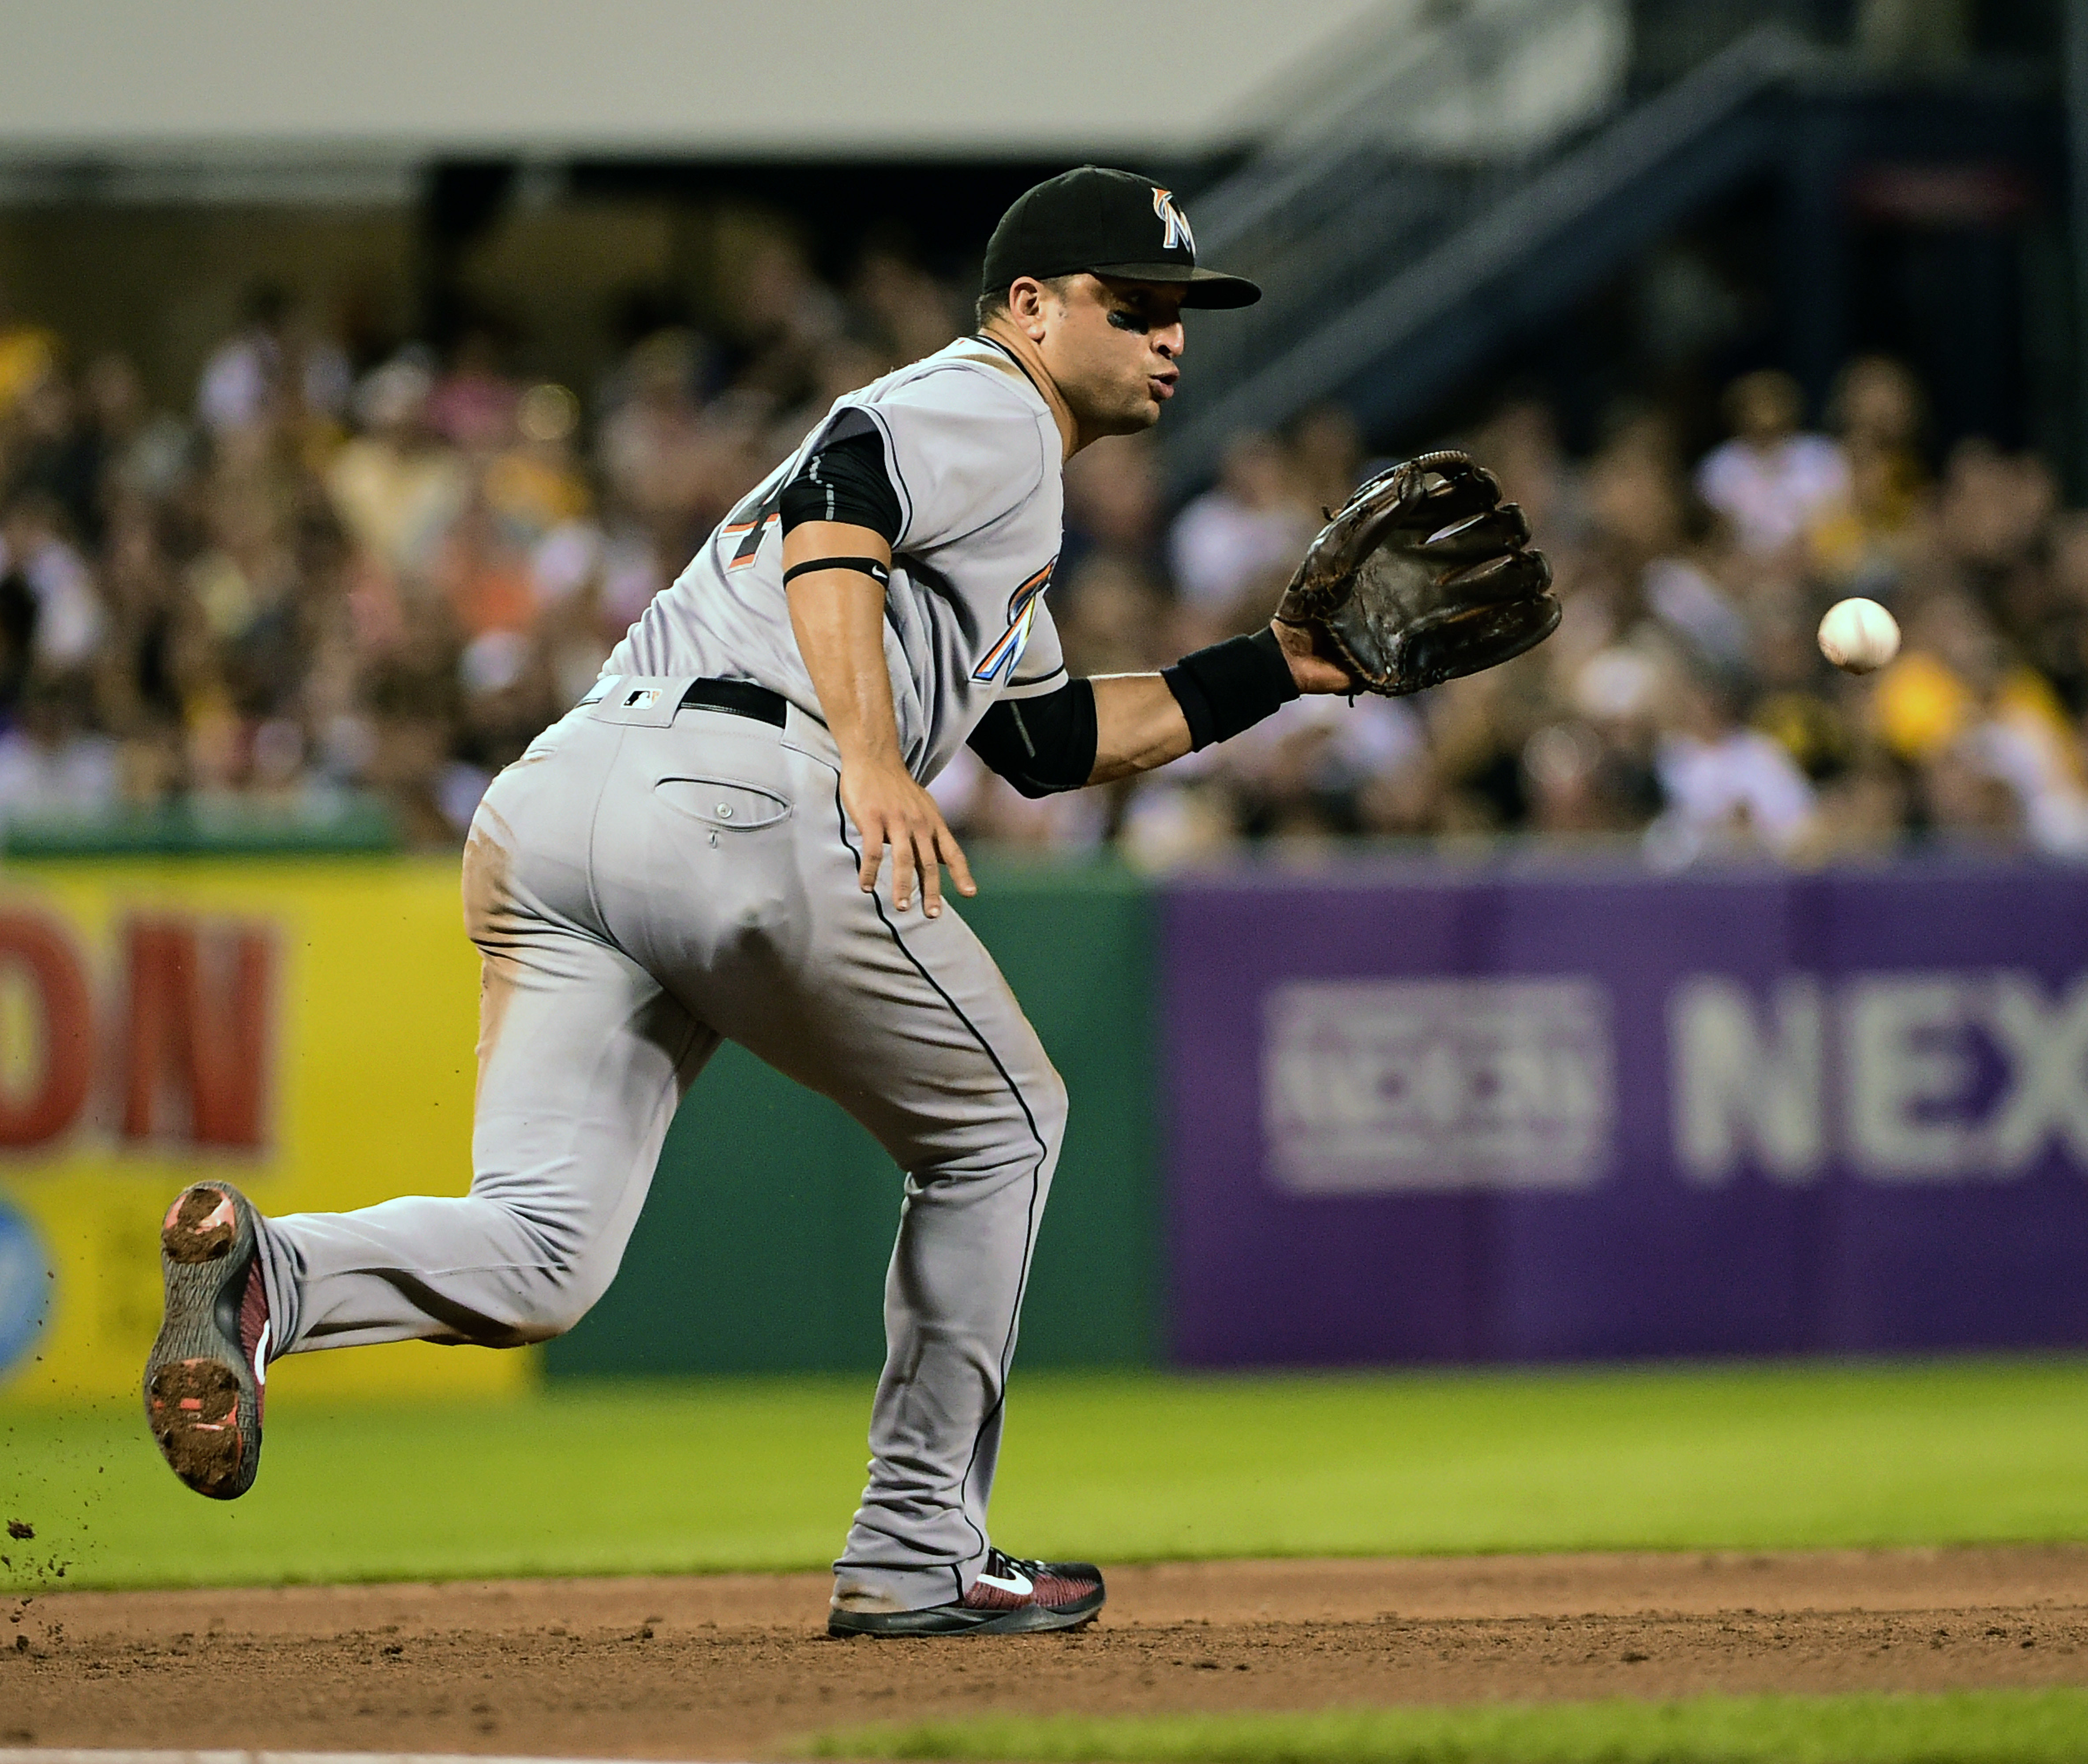 Miami Marlins' Martin Prado fields a ball hit by Pittsburgh Pirates' Starling Marte during the eighth inning of a baseball game in Pittsburgh, Saturday, Aug. 20, 2016. Prado threw to second for a force on Josh Harrison to end the inning. (AP Photo/Fred Vu